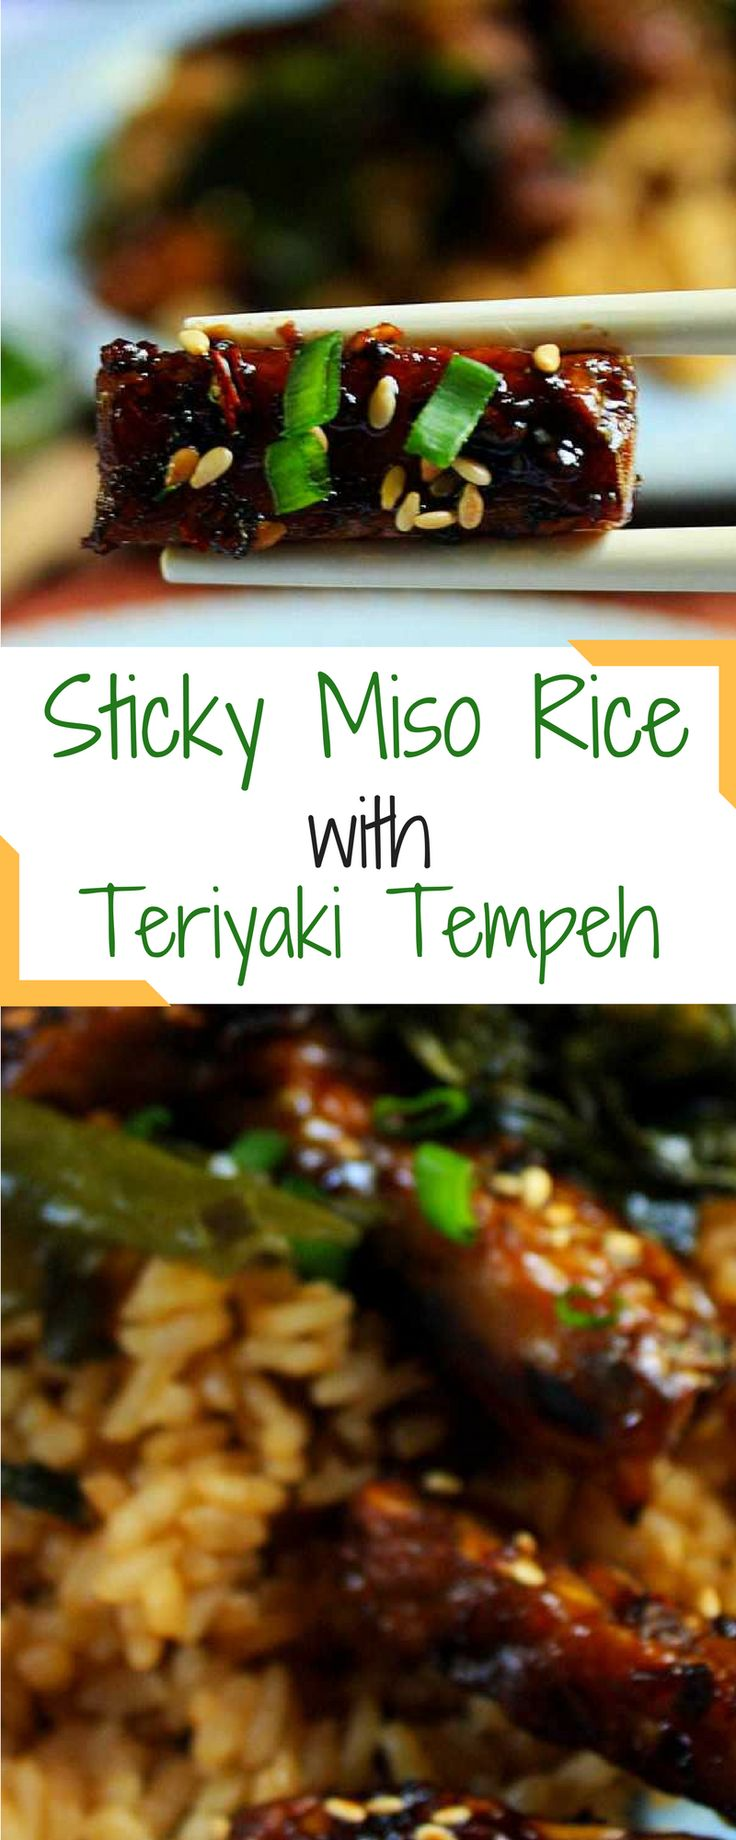 Sticky Miso Rice with Teriyaki Tempeh | Vegan.io | The easist way to follow a vegan diet